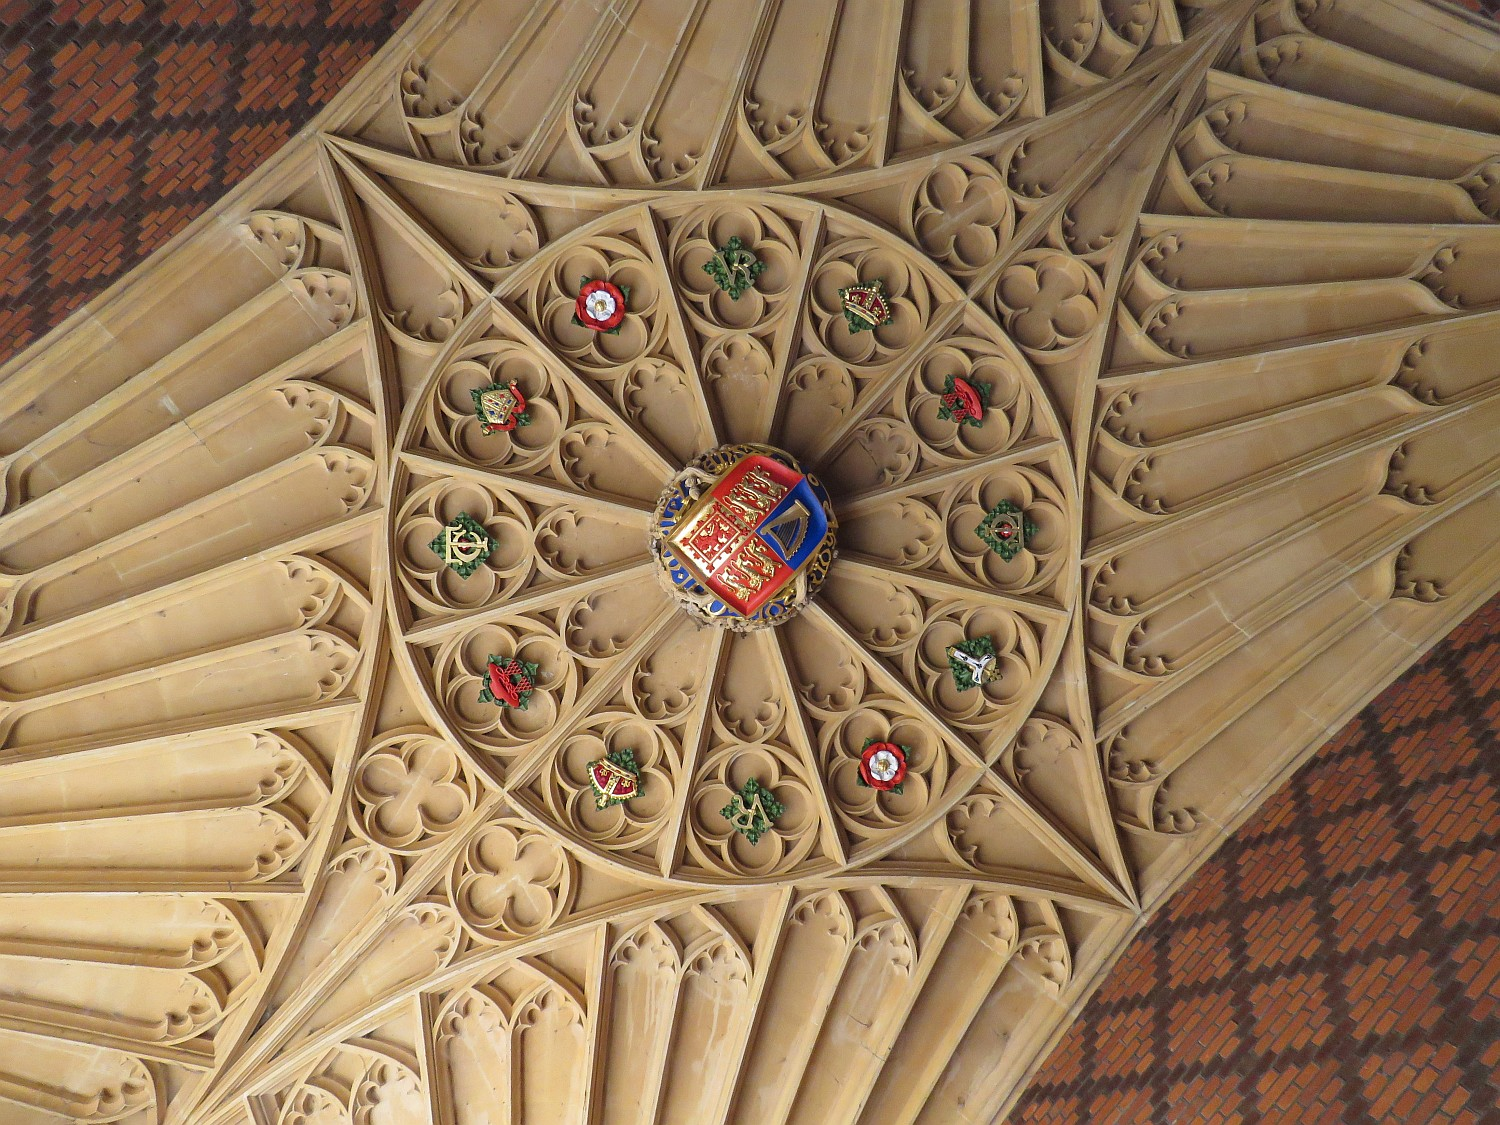 Ceiling of the main entrance gatehouse.  Most of the rooms from Henry's time have magnificent carved wooden ceilings.